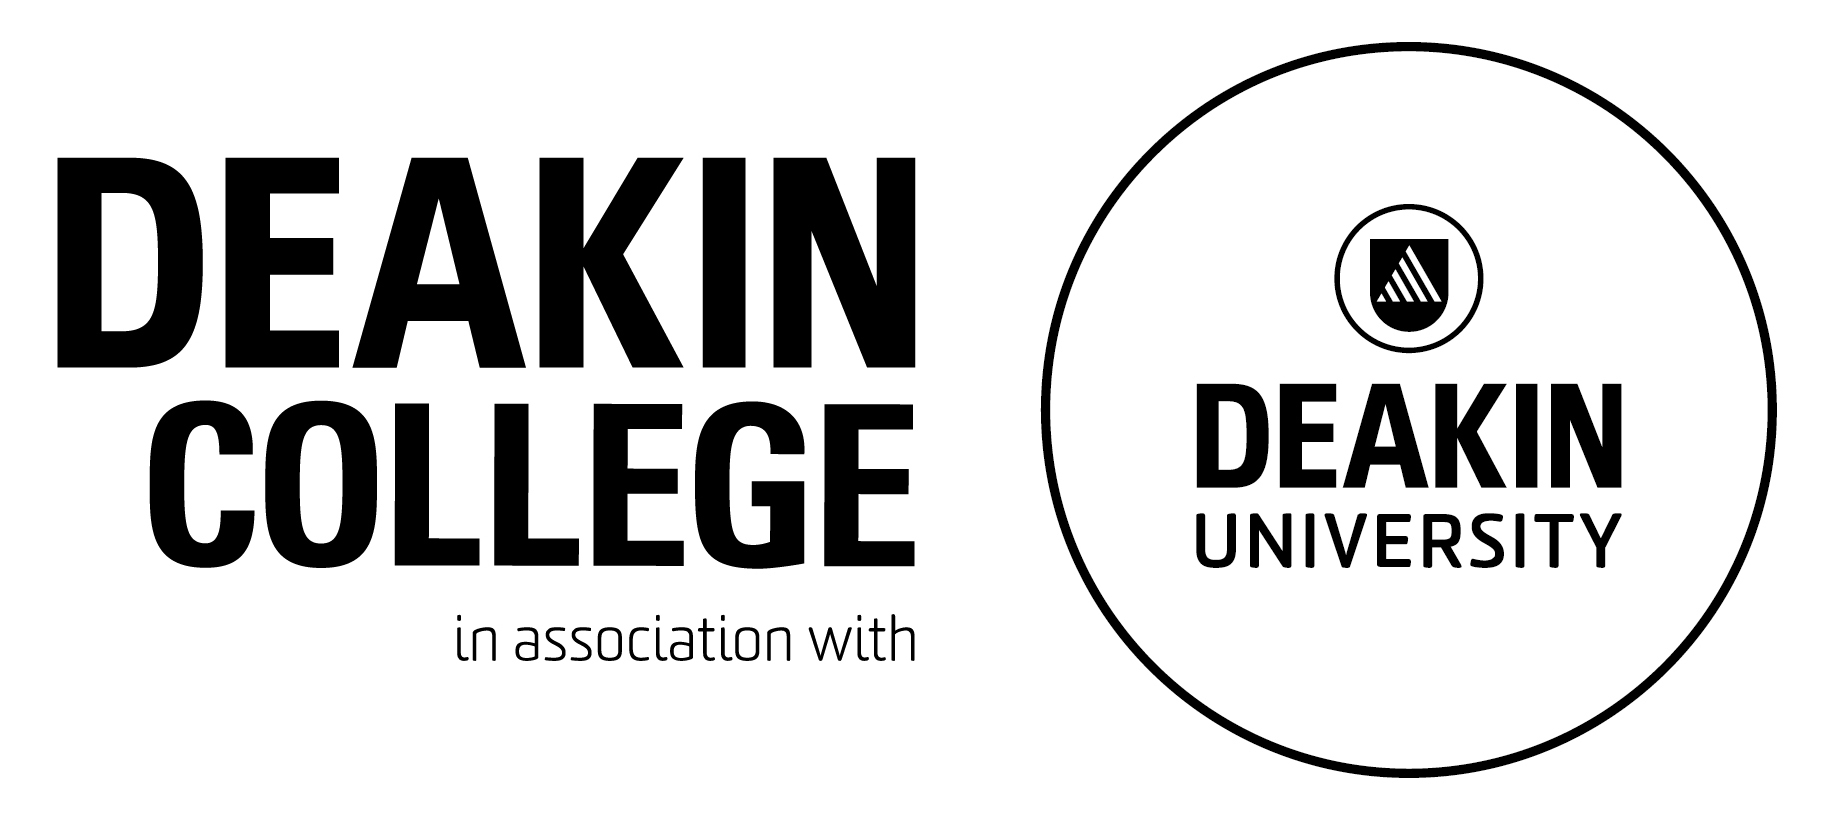 Deakin College - Deakin University